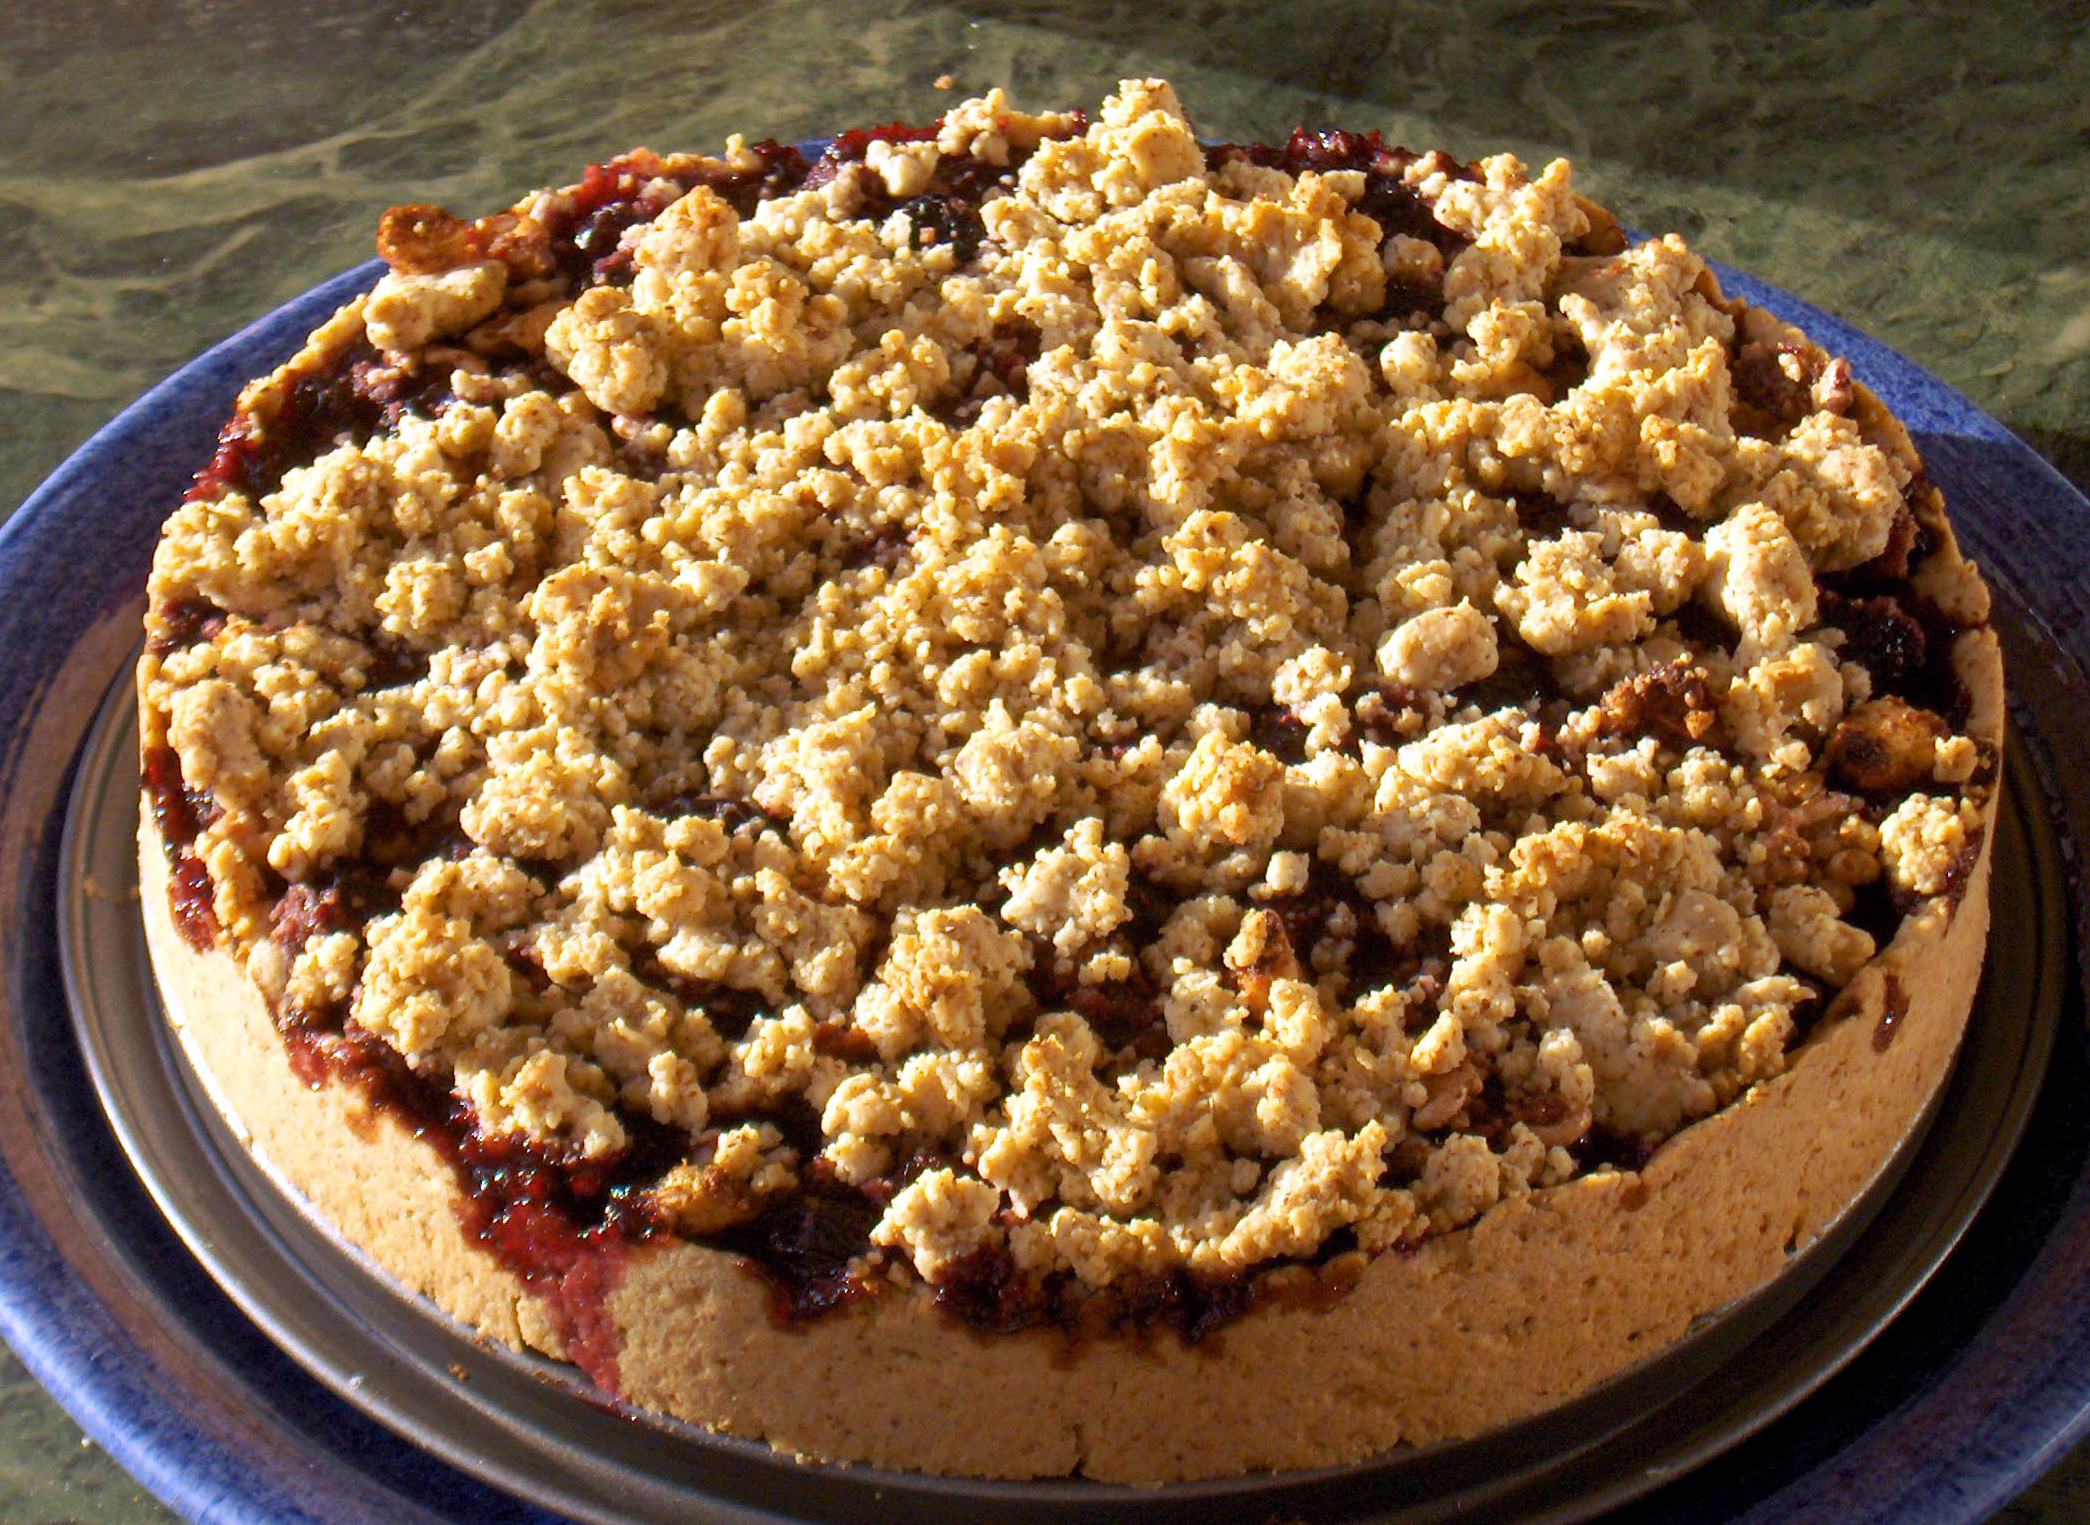 """Cherry Crumble Tart: A Tart with a """"Wow Factor"""" 